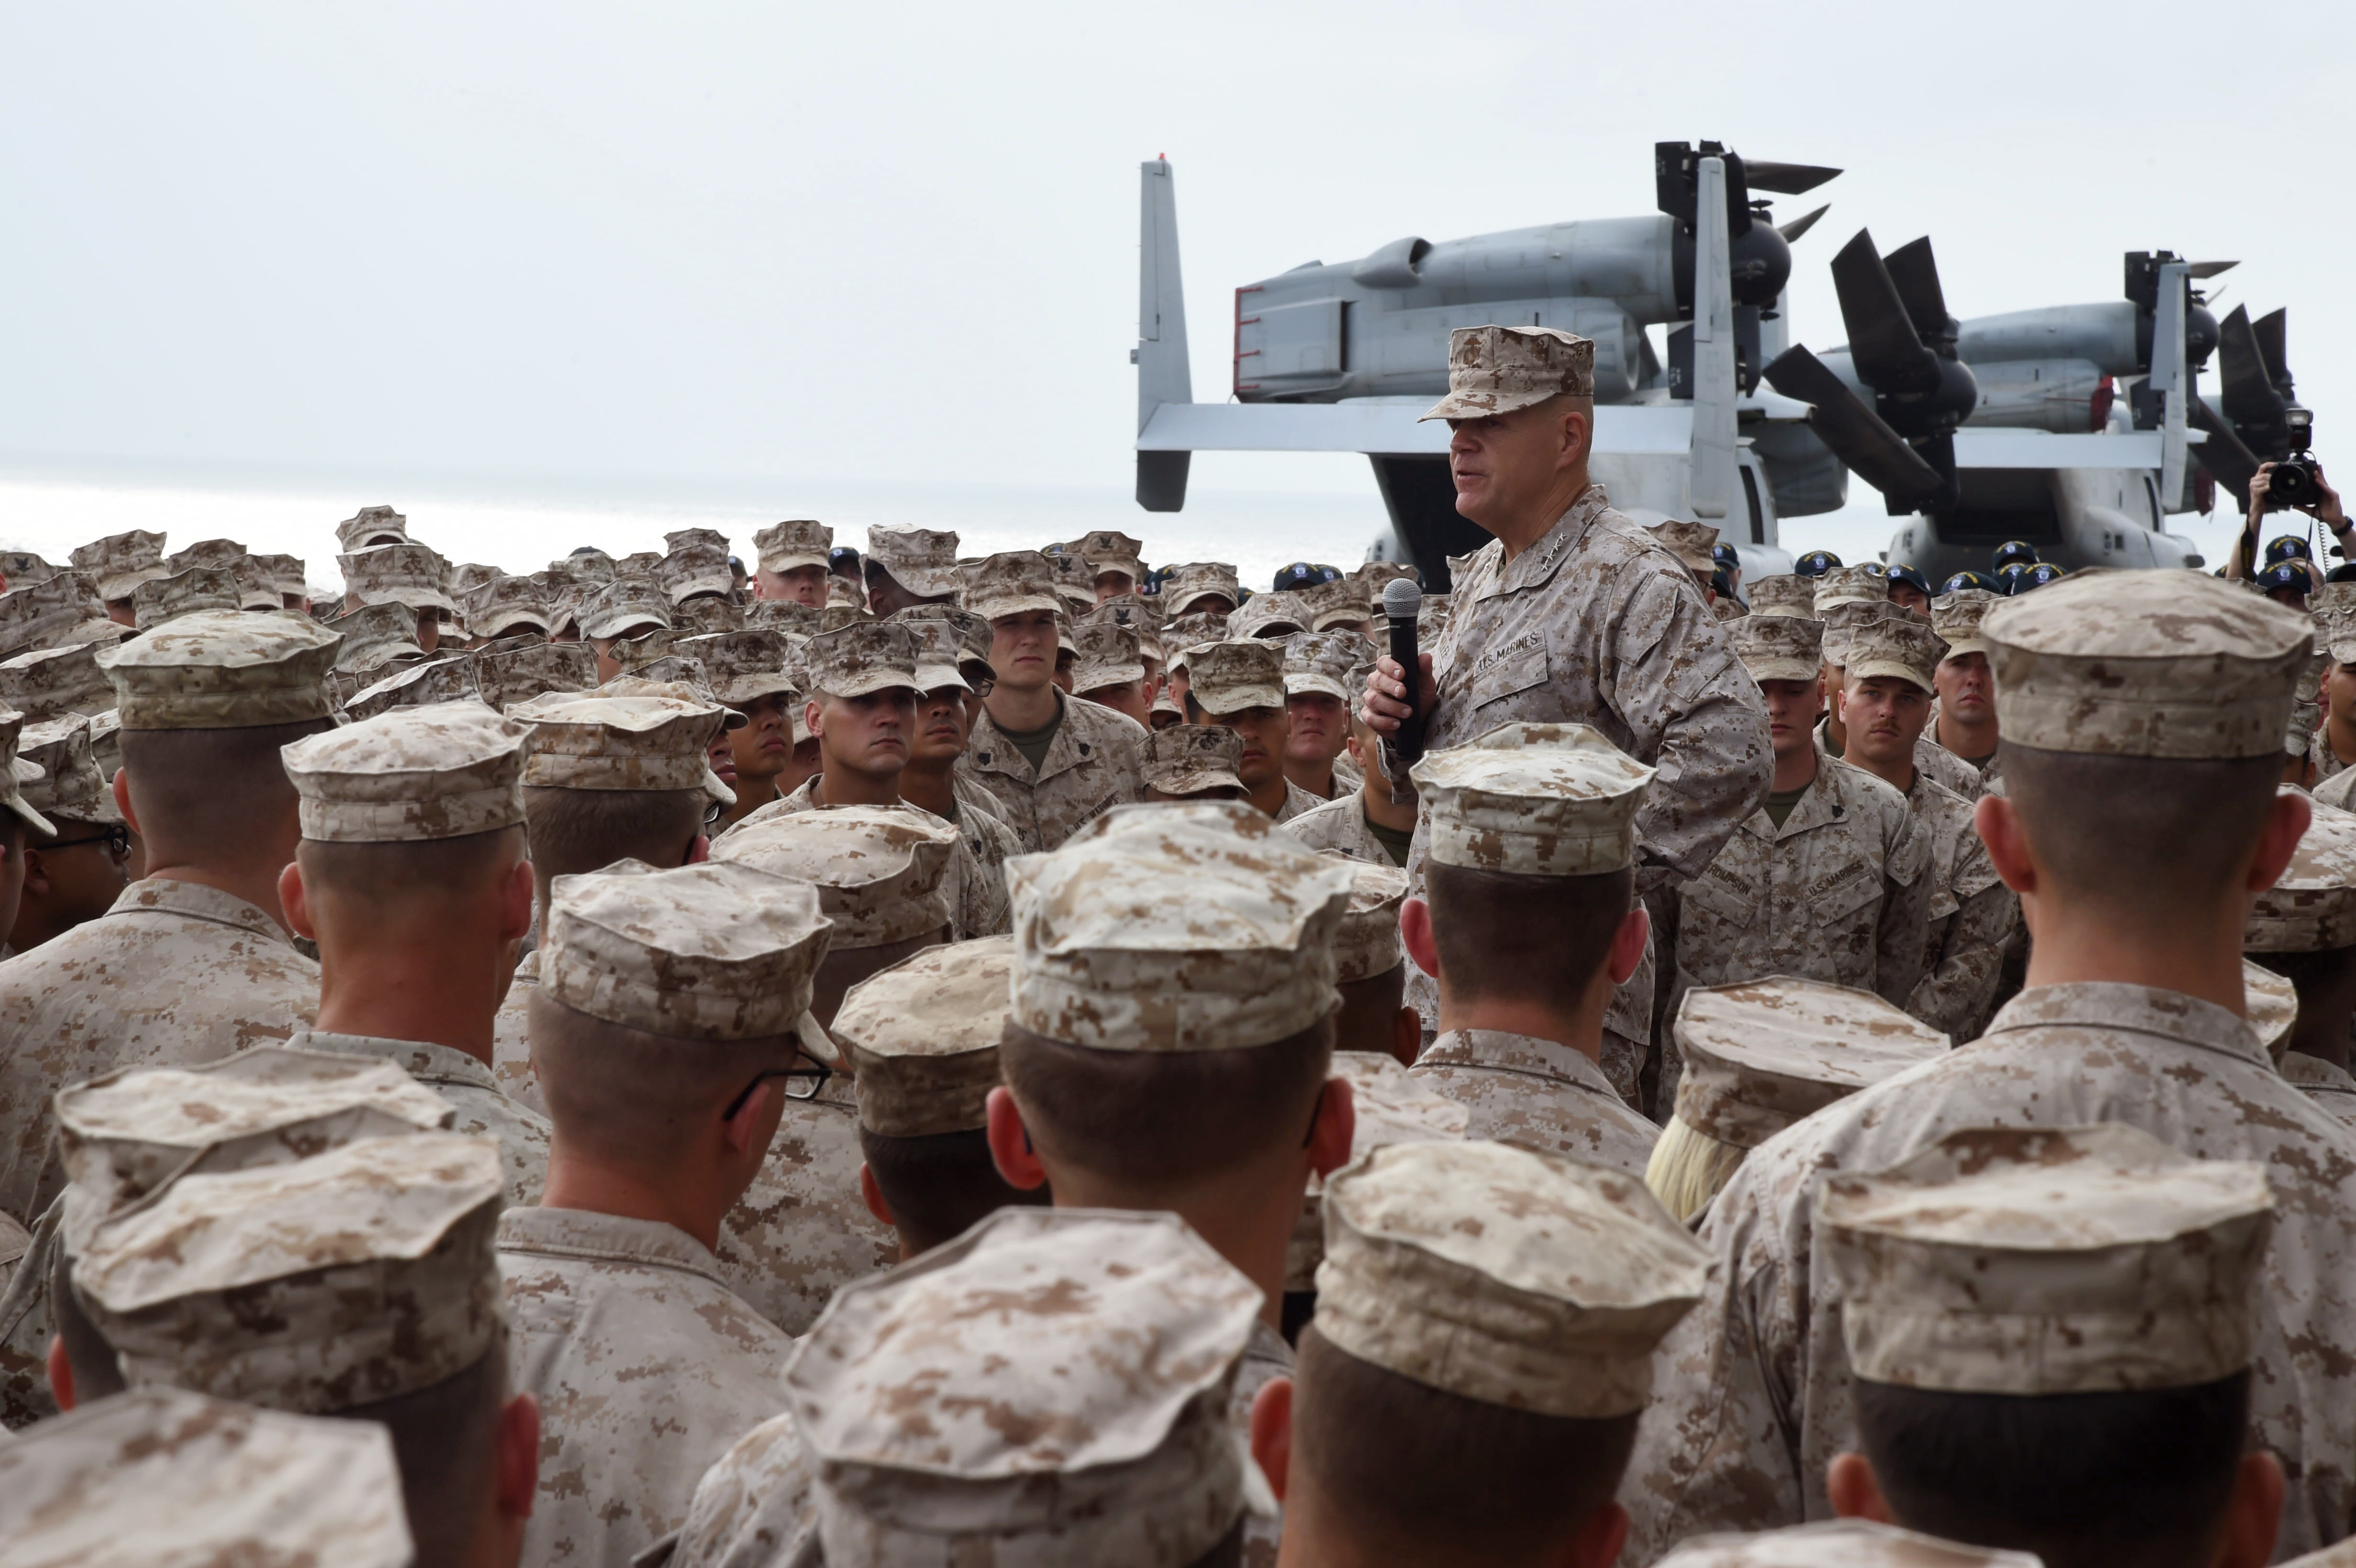 U.S. Marine Corps Gen. Robert B. Neller, 37th Commandant of the Marine Corps, speaks to Marines with the 11th Marine Expeditionary Unit and Sailors assigned to the amphibious assault ship USS Makin Island (LHD 8), on the flight deck the Makin Island, in the Gulf of Aden, Dec. 23, 2016. The Commandant and Sergeant Major of the Marine Corps conducted a holiday tour to visit Marines and Sailors stationed overseas and forward deployed. (U.S. Air National Guard photo by Staff Sgt. Penny Snoozy)